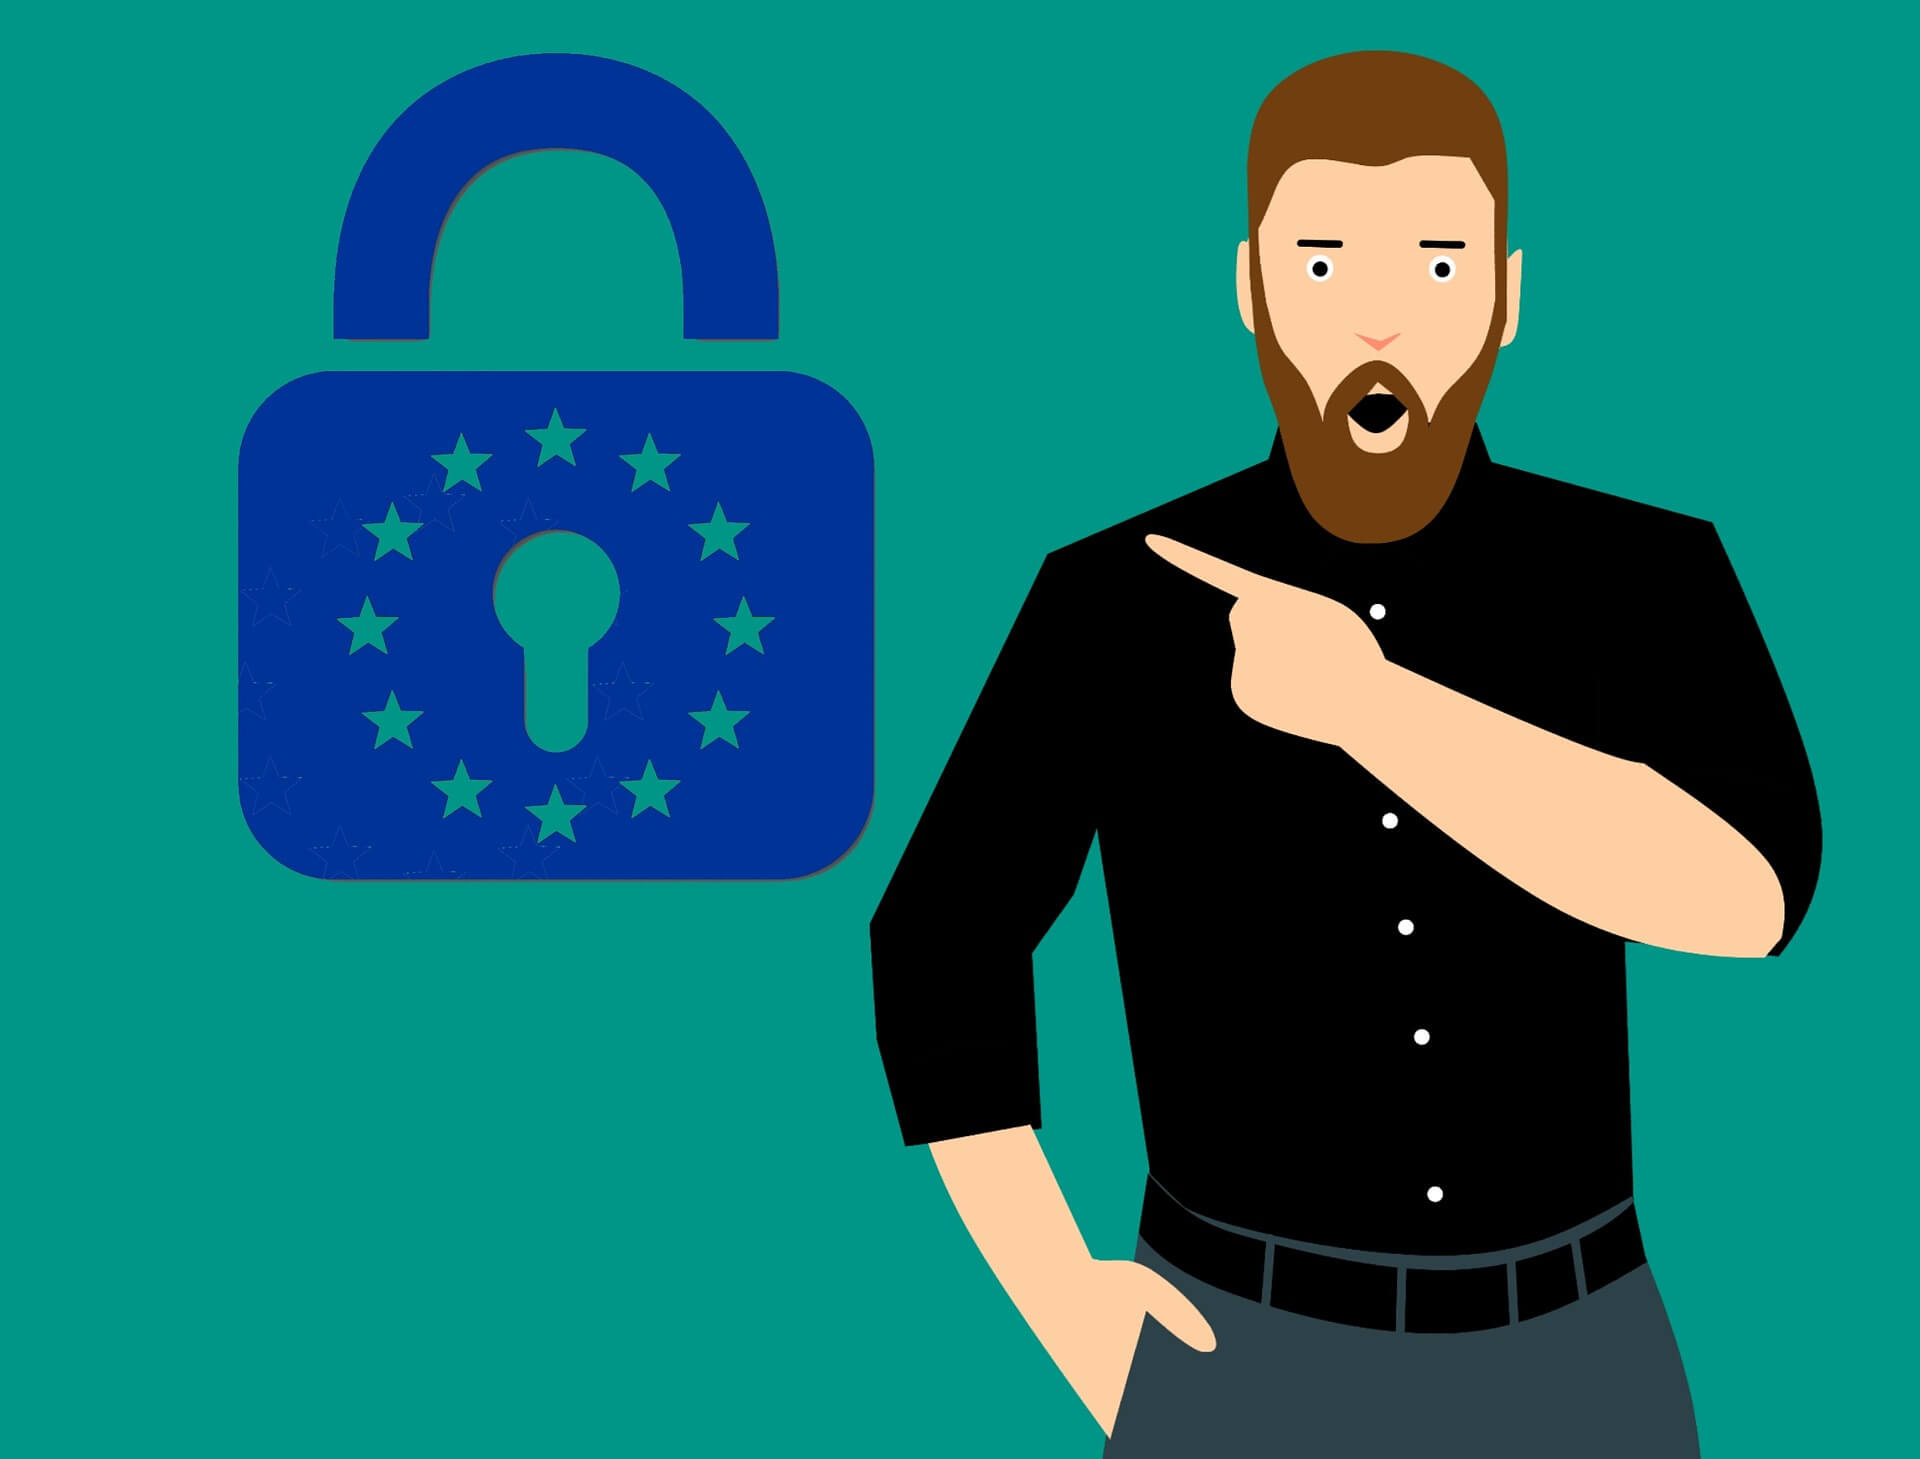 This graphic shows a man pointing to a lock. This lock has a star symbol symbolizing the European Union. The graphic stands for secure email encryption with TLS 1.2 according to data protection guidelines such as the GDPR.